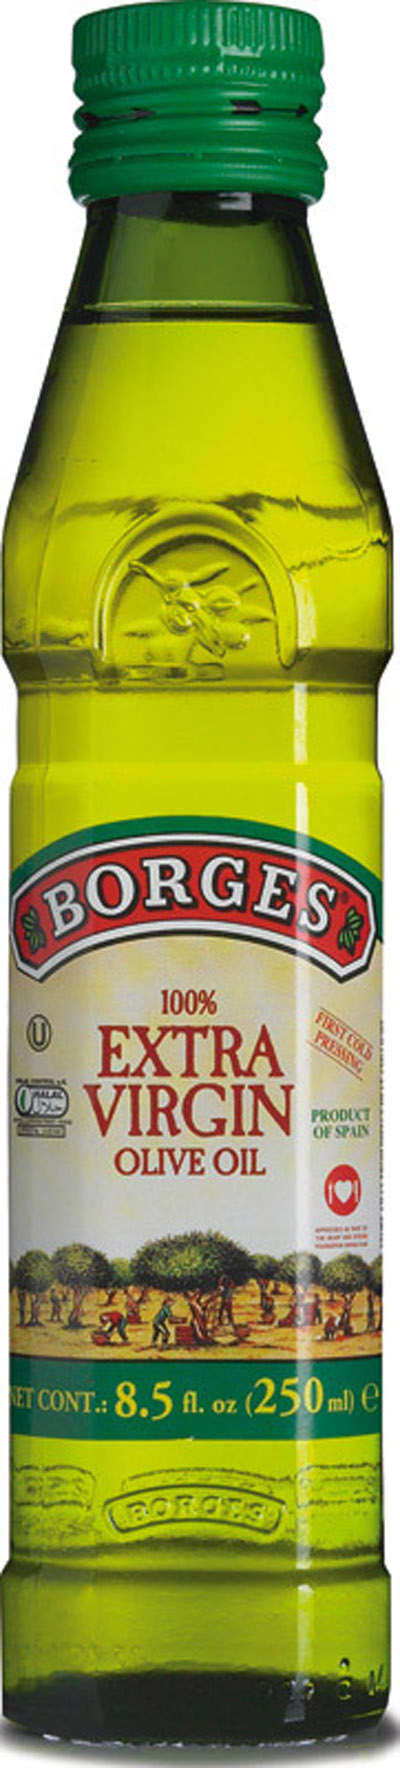 BORGES 250ml EXT. VIRG Olive Oil